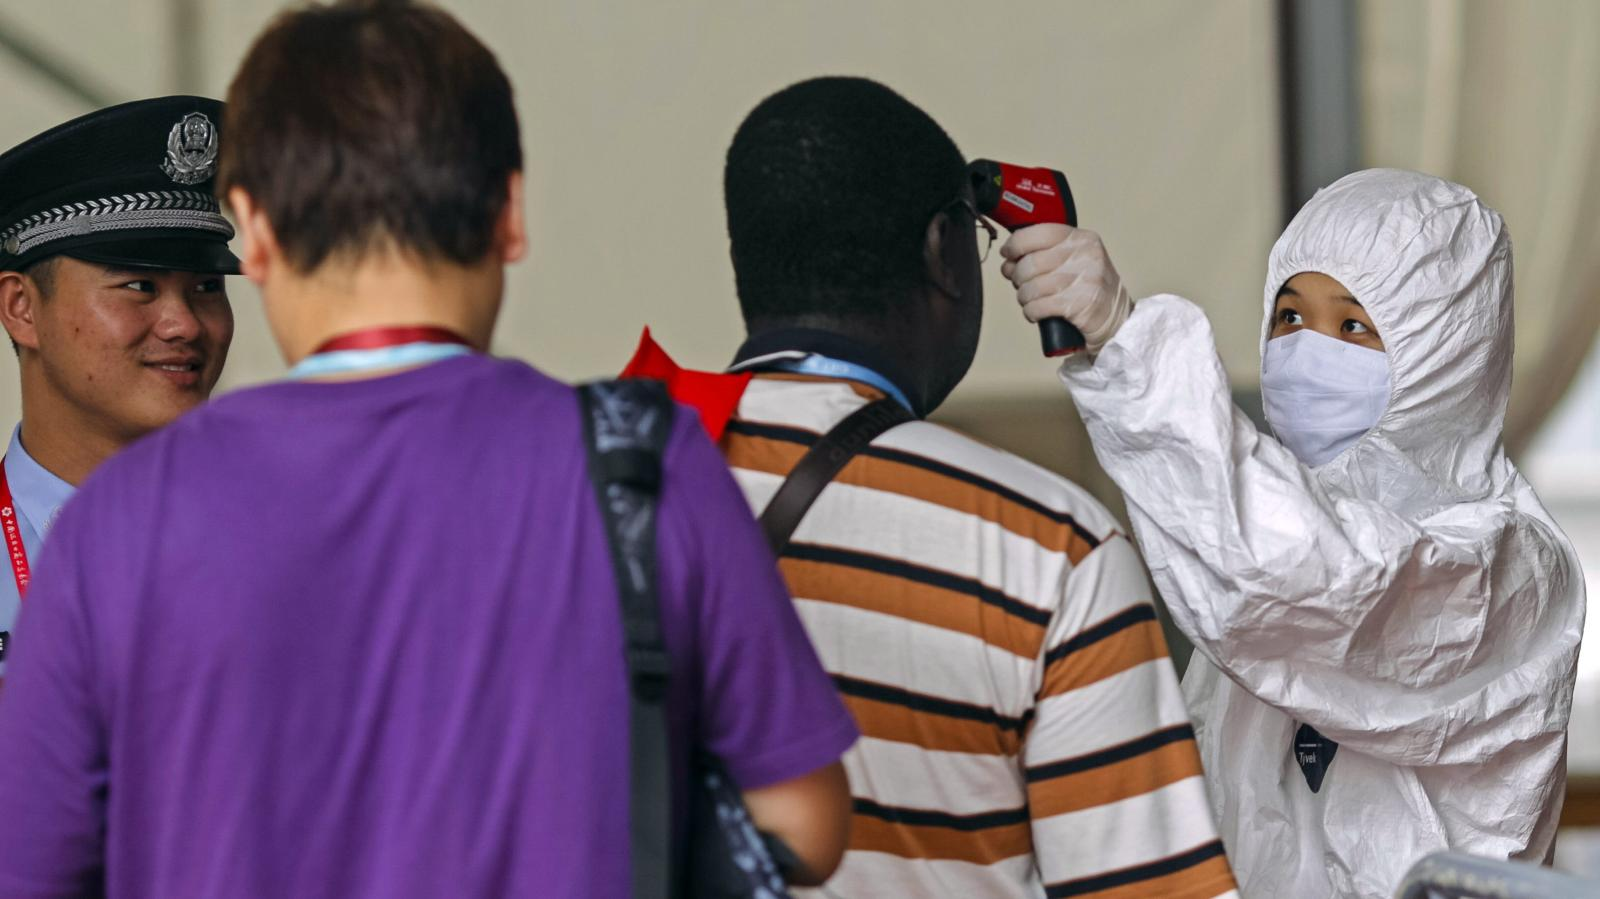 People have their temperature taken at the entrance of the Canton Fair in Guangzhou during the Ebola crisis in 2014.